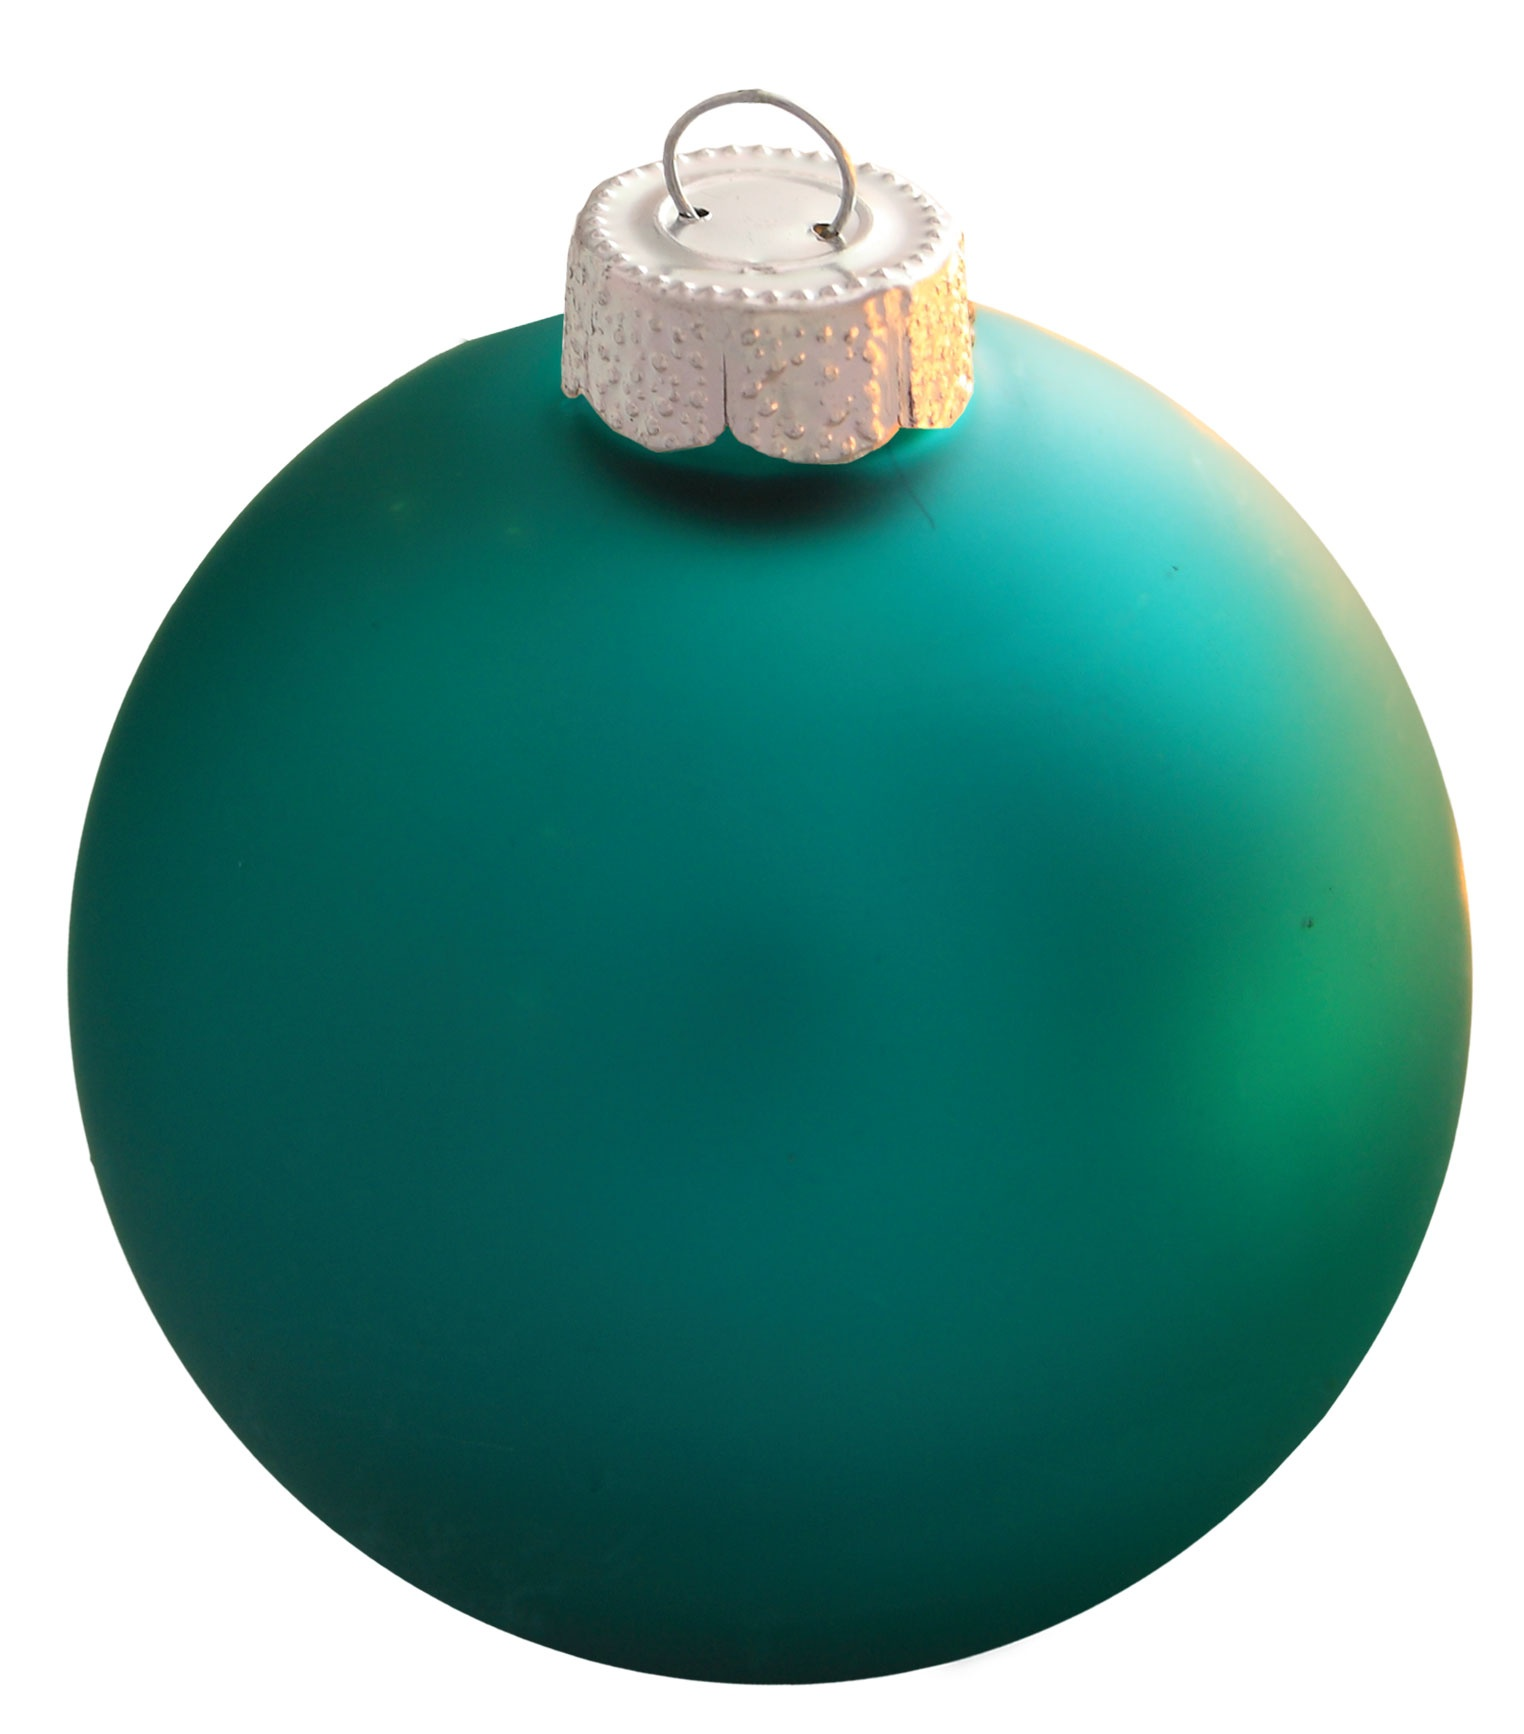 turquoise glass ball christmas ornament - Teal Christmas Ornaments